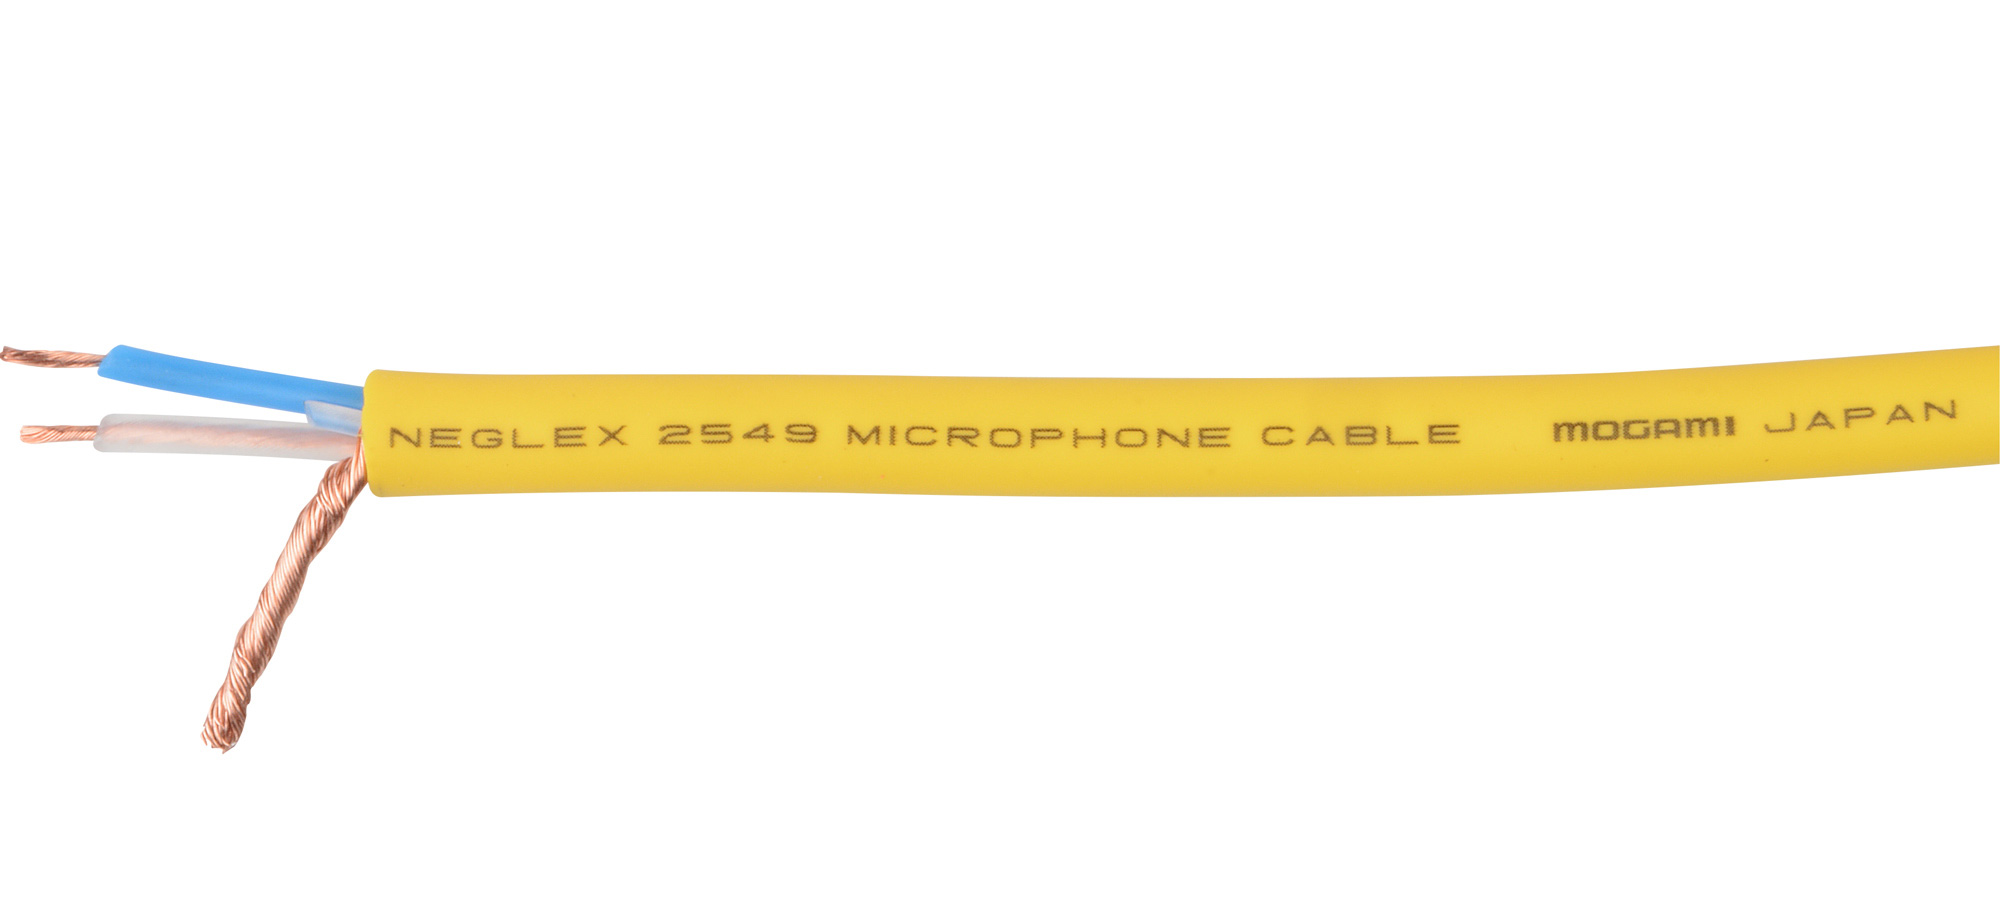 mogami 2549 2 conductor microphone cable 22awg per foot yellow. Black Bedroom Furniture Sets. Home Design Ideas